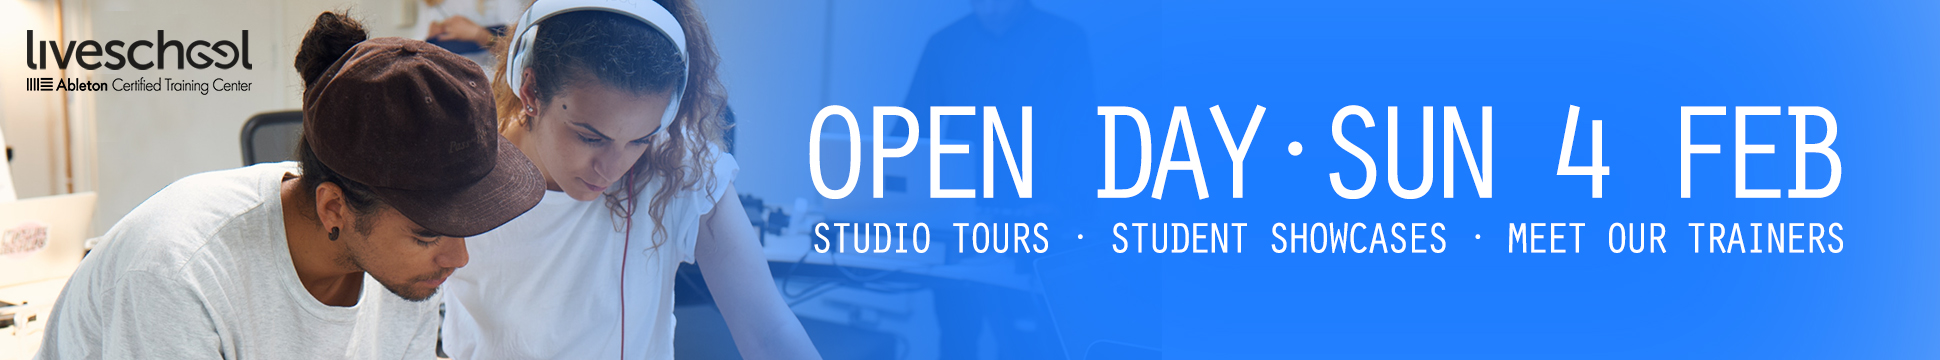 Ableton-Liveschool-Open-Day-Feb-2018